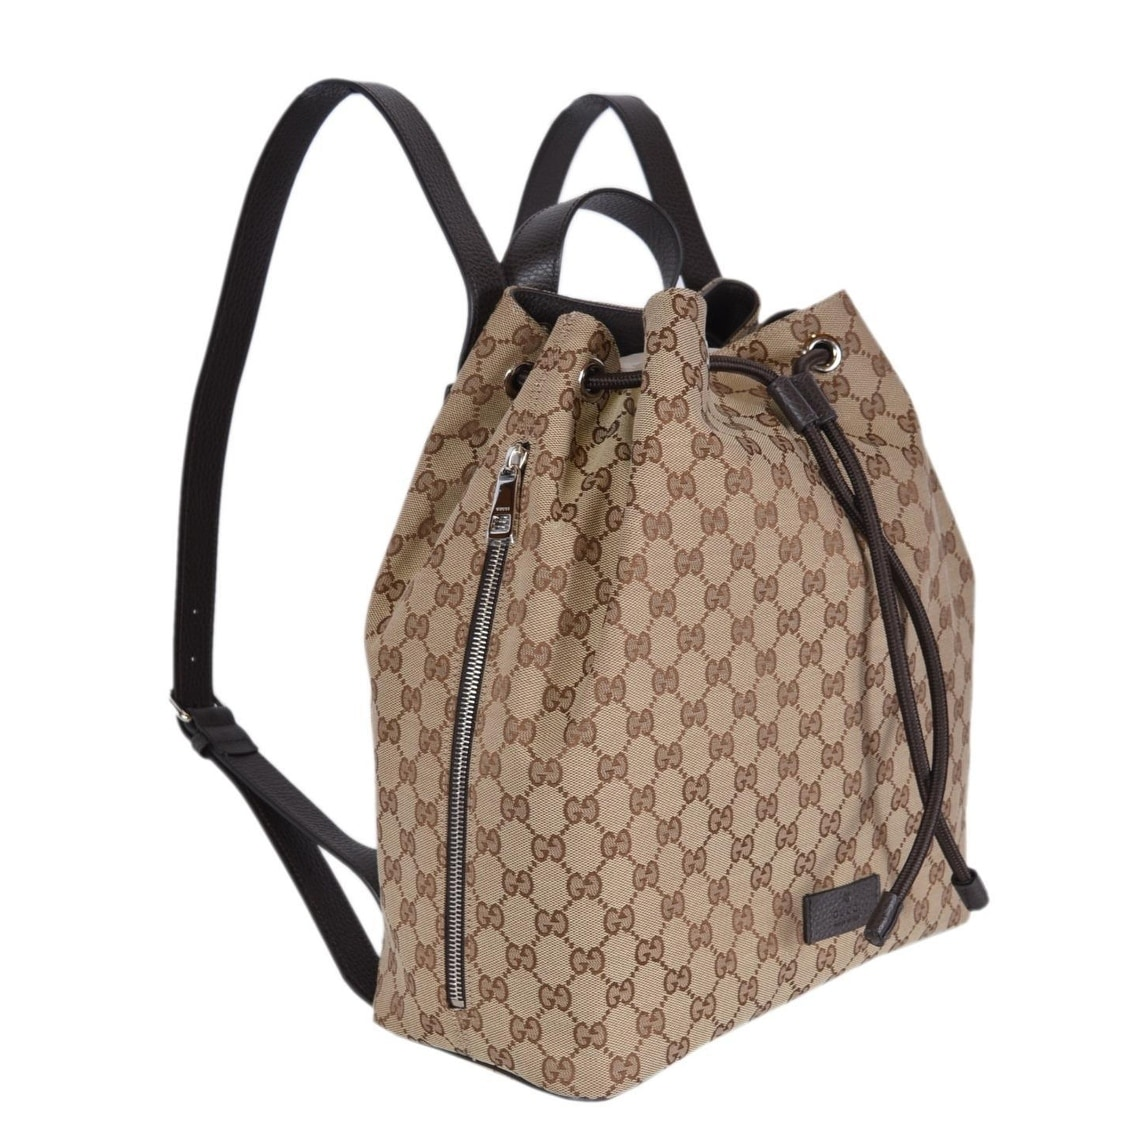 a6d86f36bb35 Shop Gucci 449175 Beige Canvas GG Guccissima Drawstring Backpack Rucksack  Bag - Beige/Brown - Free Shipping Today - Overstock - 22817017